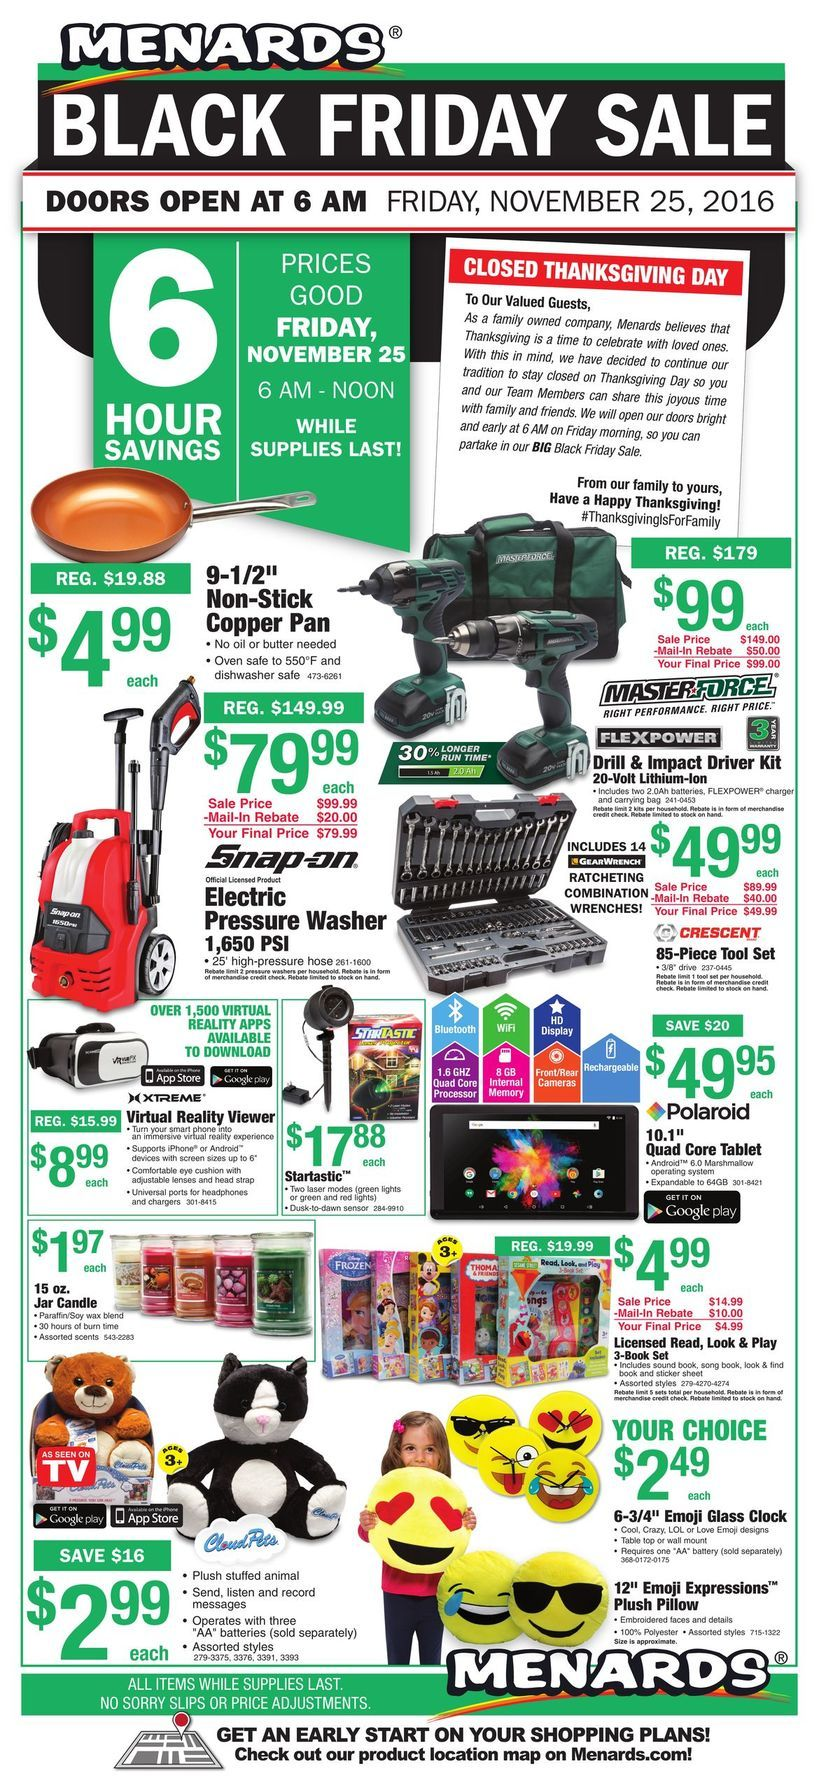 Uncategorized Black Friday Ad Menards menards black friday ad httpwww hblackfridaydeals commenards commenards